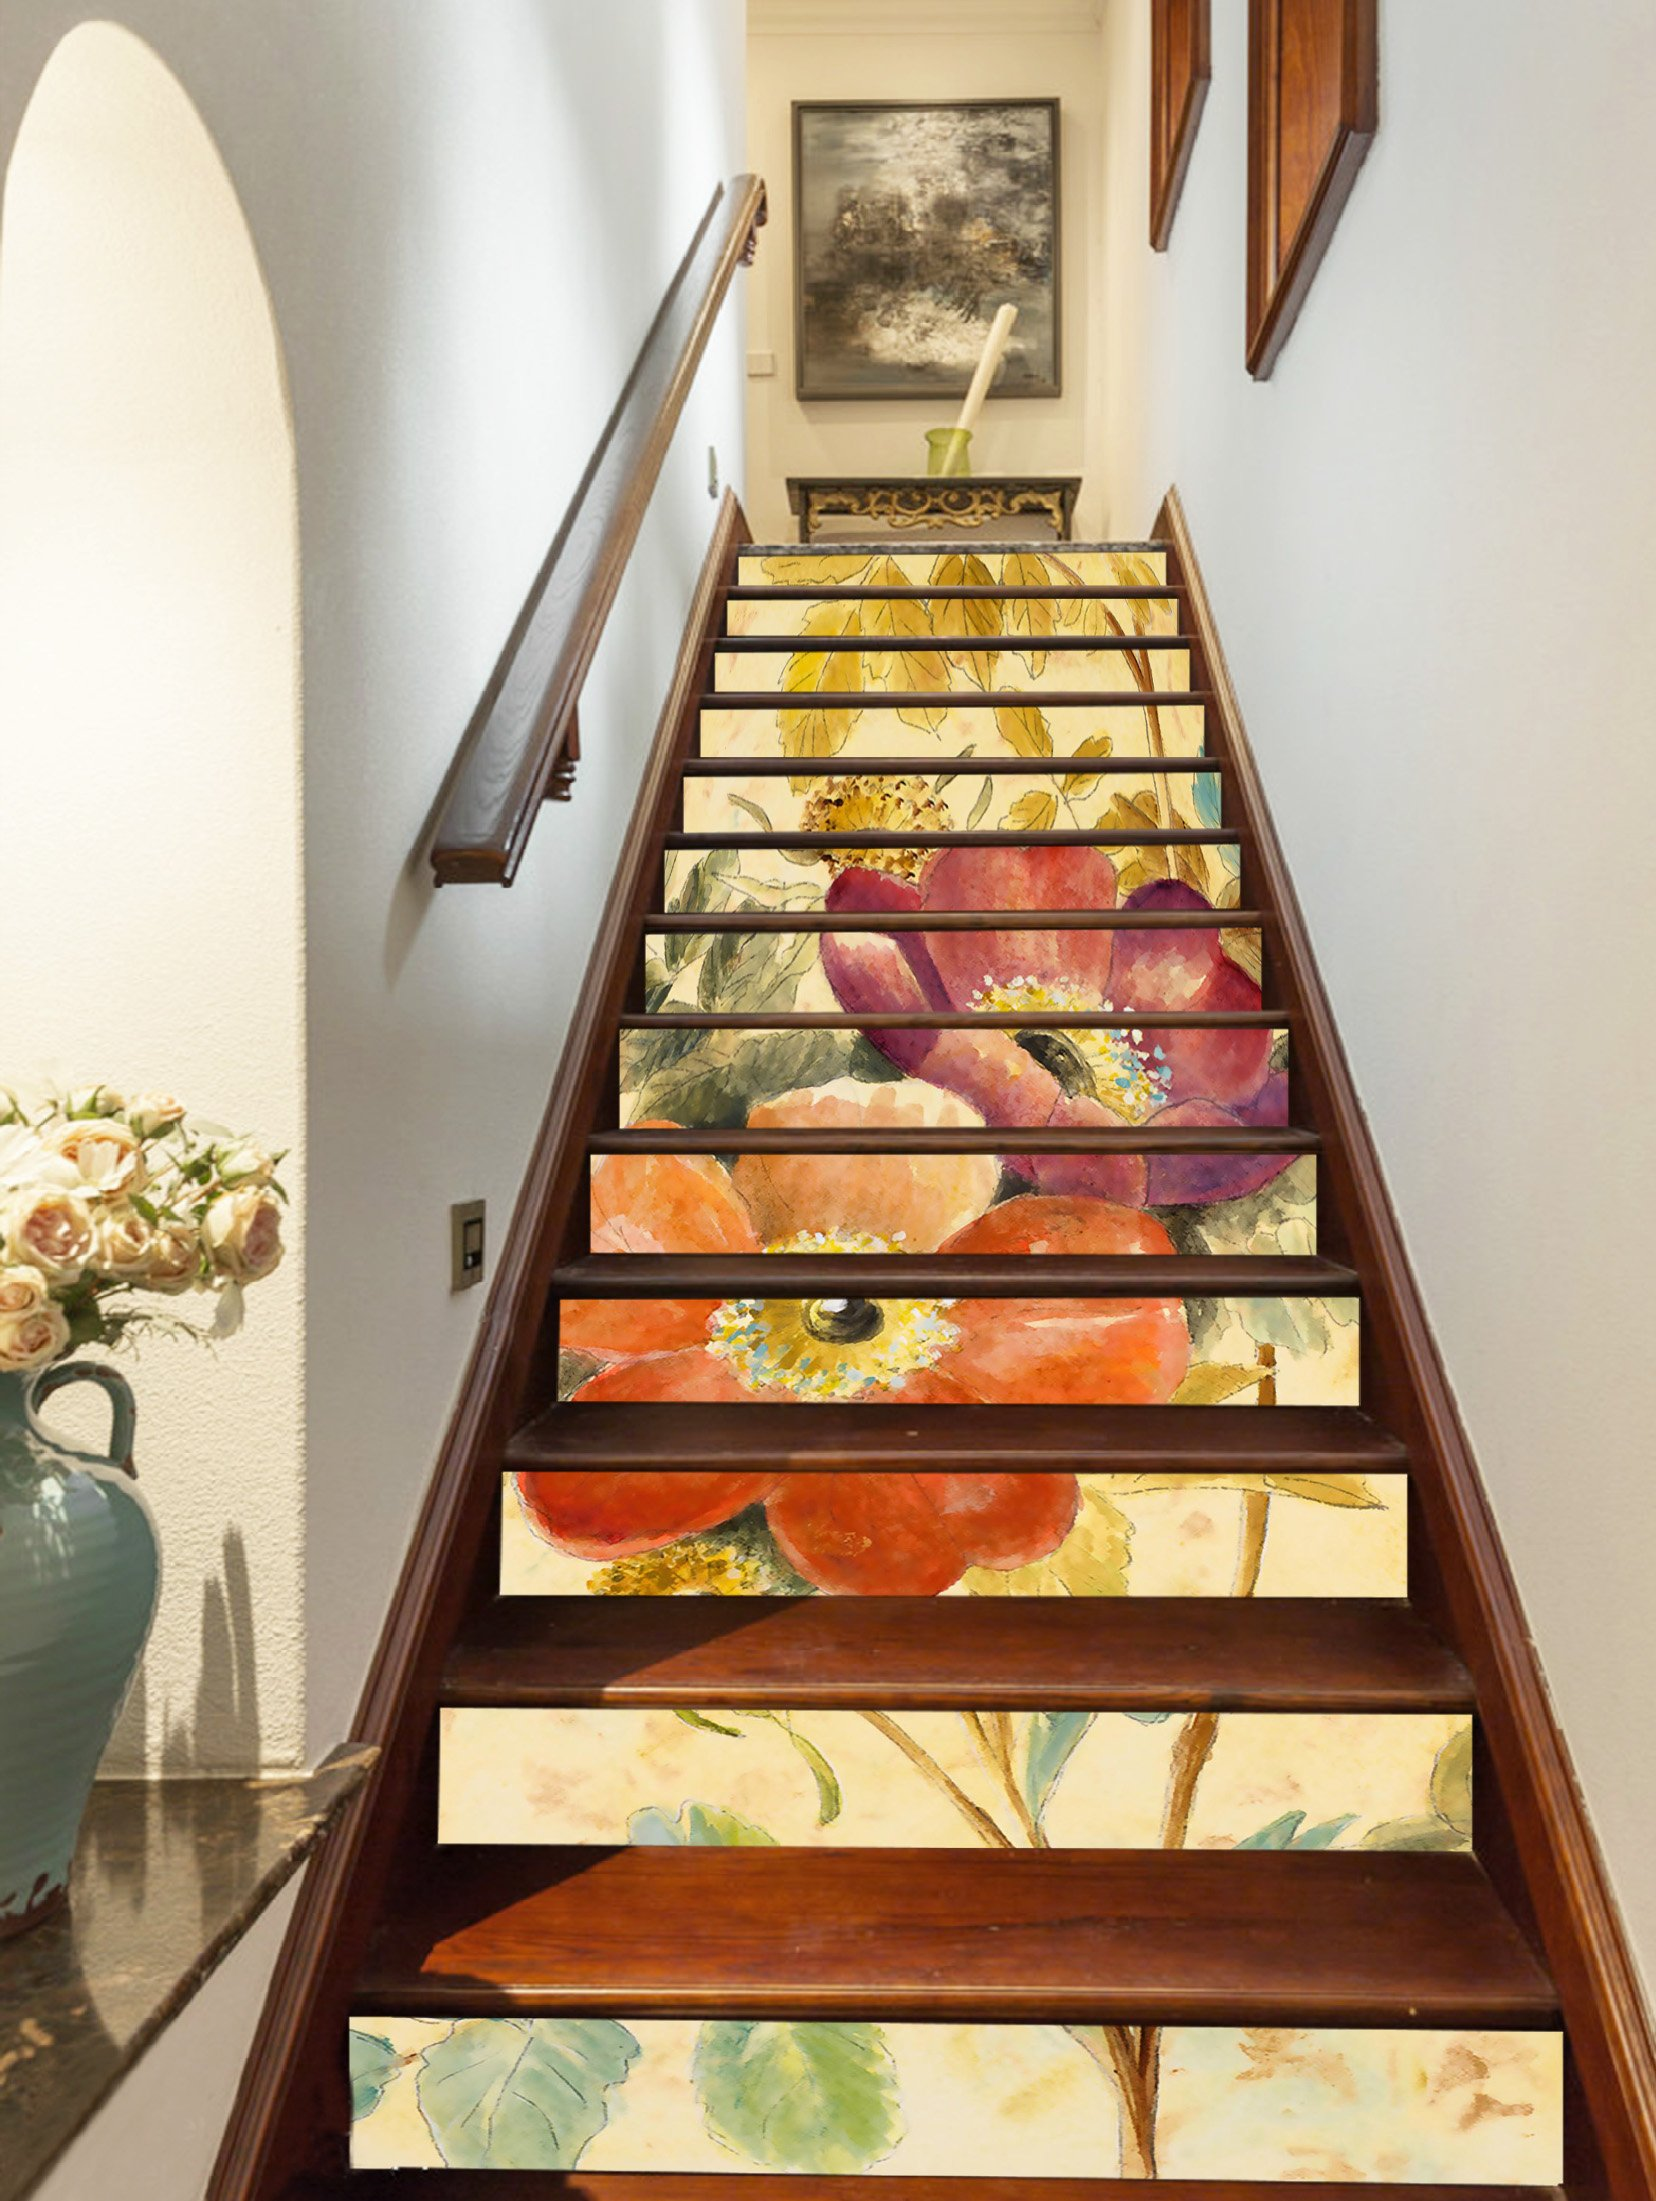 3D Beautiful Flowers Painting 0695 Stair Risers Decoration Photo Mural Vinyl Decal Wallpaper Murals Wallpaper Mural US Lemon (15x H:18cm x W:94cm (7''x37'')) by AJ WALLPAPER